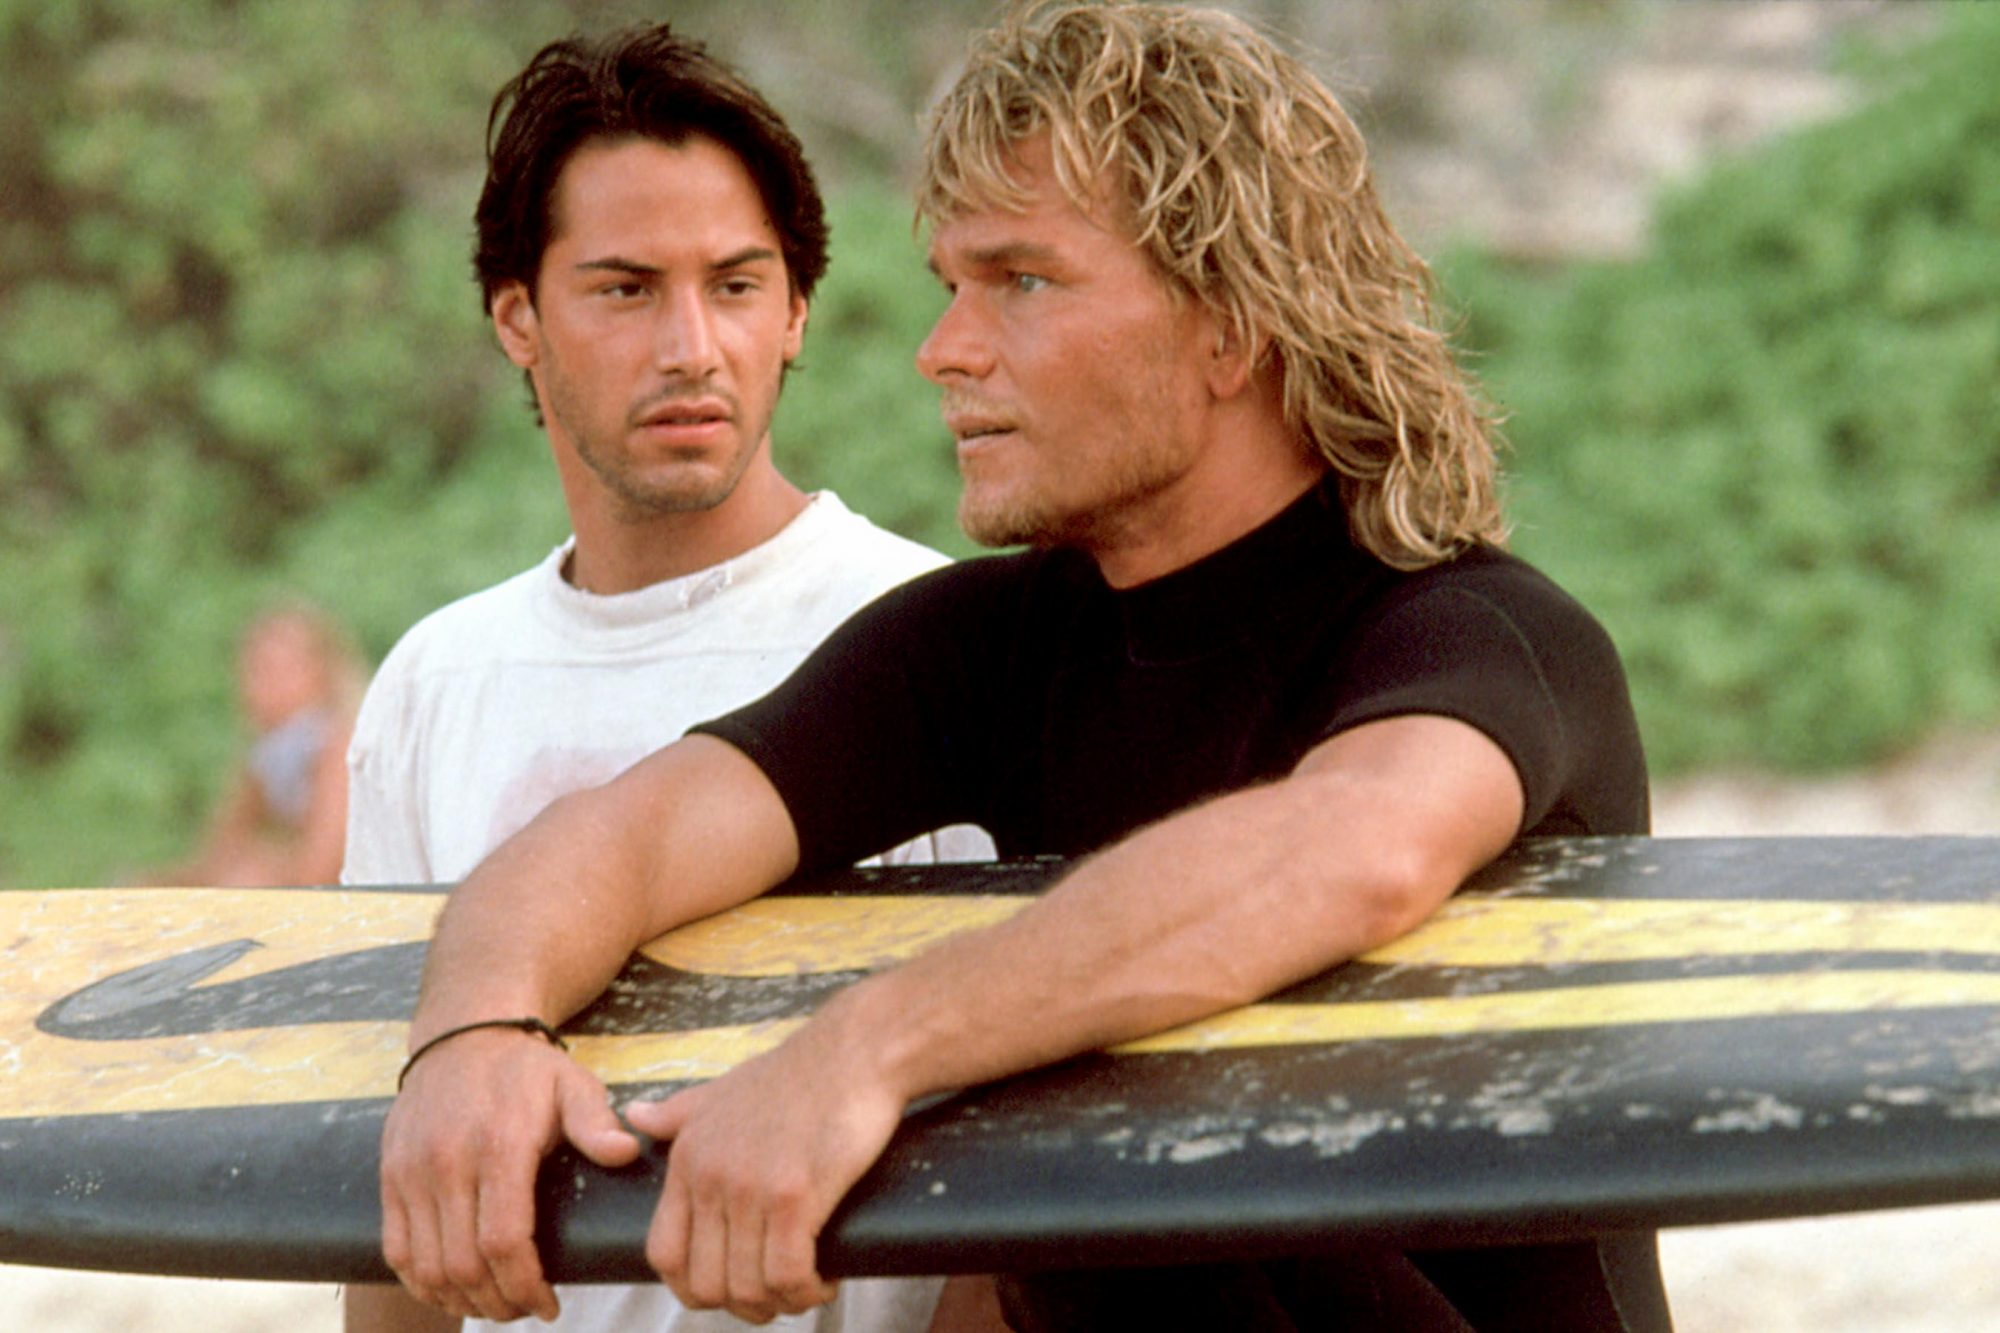 POINT BREAK, Keanu Reeves, Patrick Swayze, 1991. TM and Copyright (c) 20th Century Fox Film Corp. Al